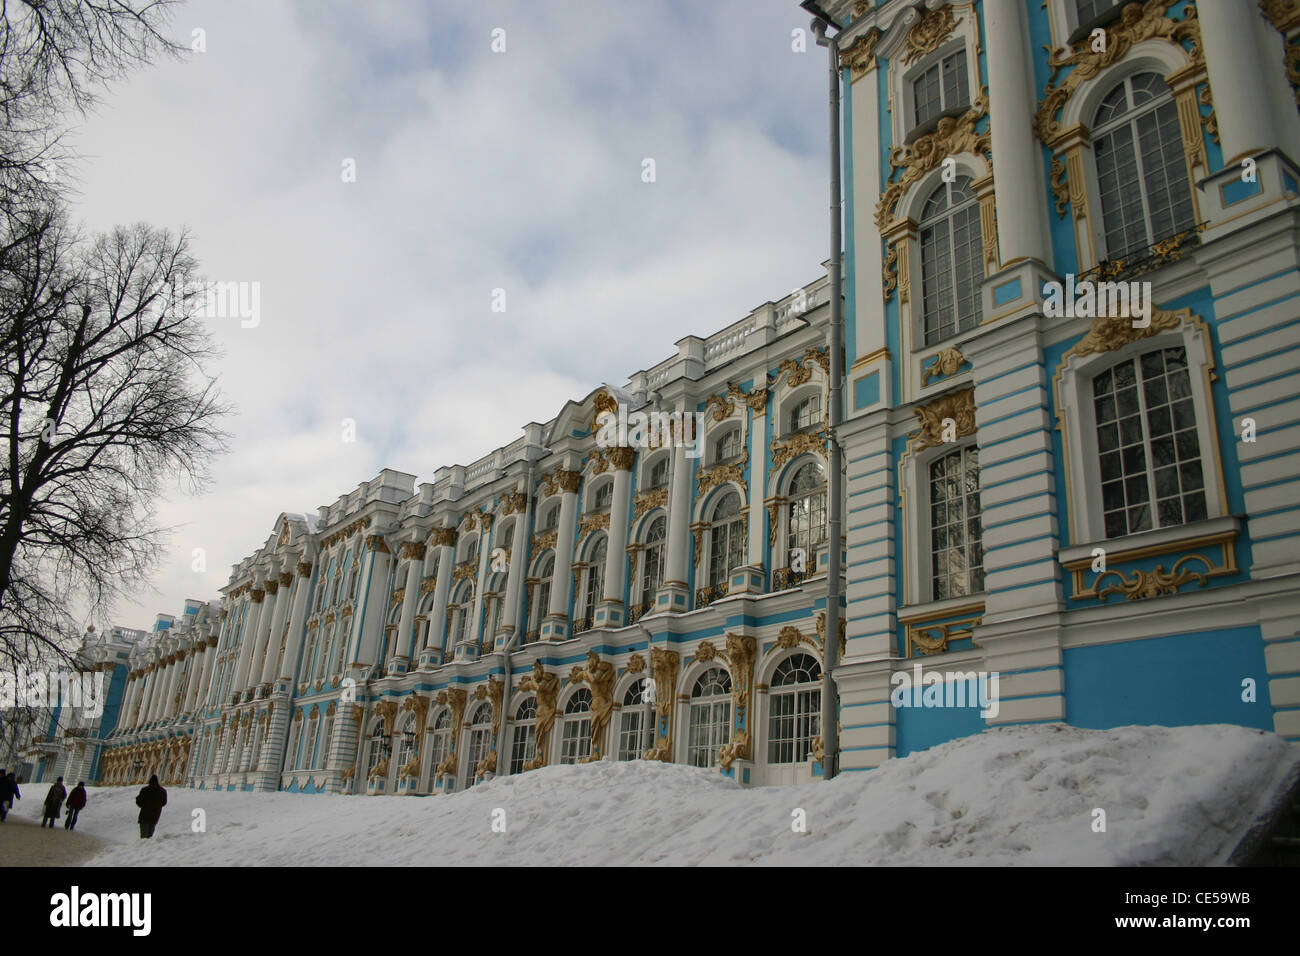 The Catherine Palace was the Rococo summer residence of the Russian tsars. Stock Photo